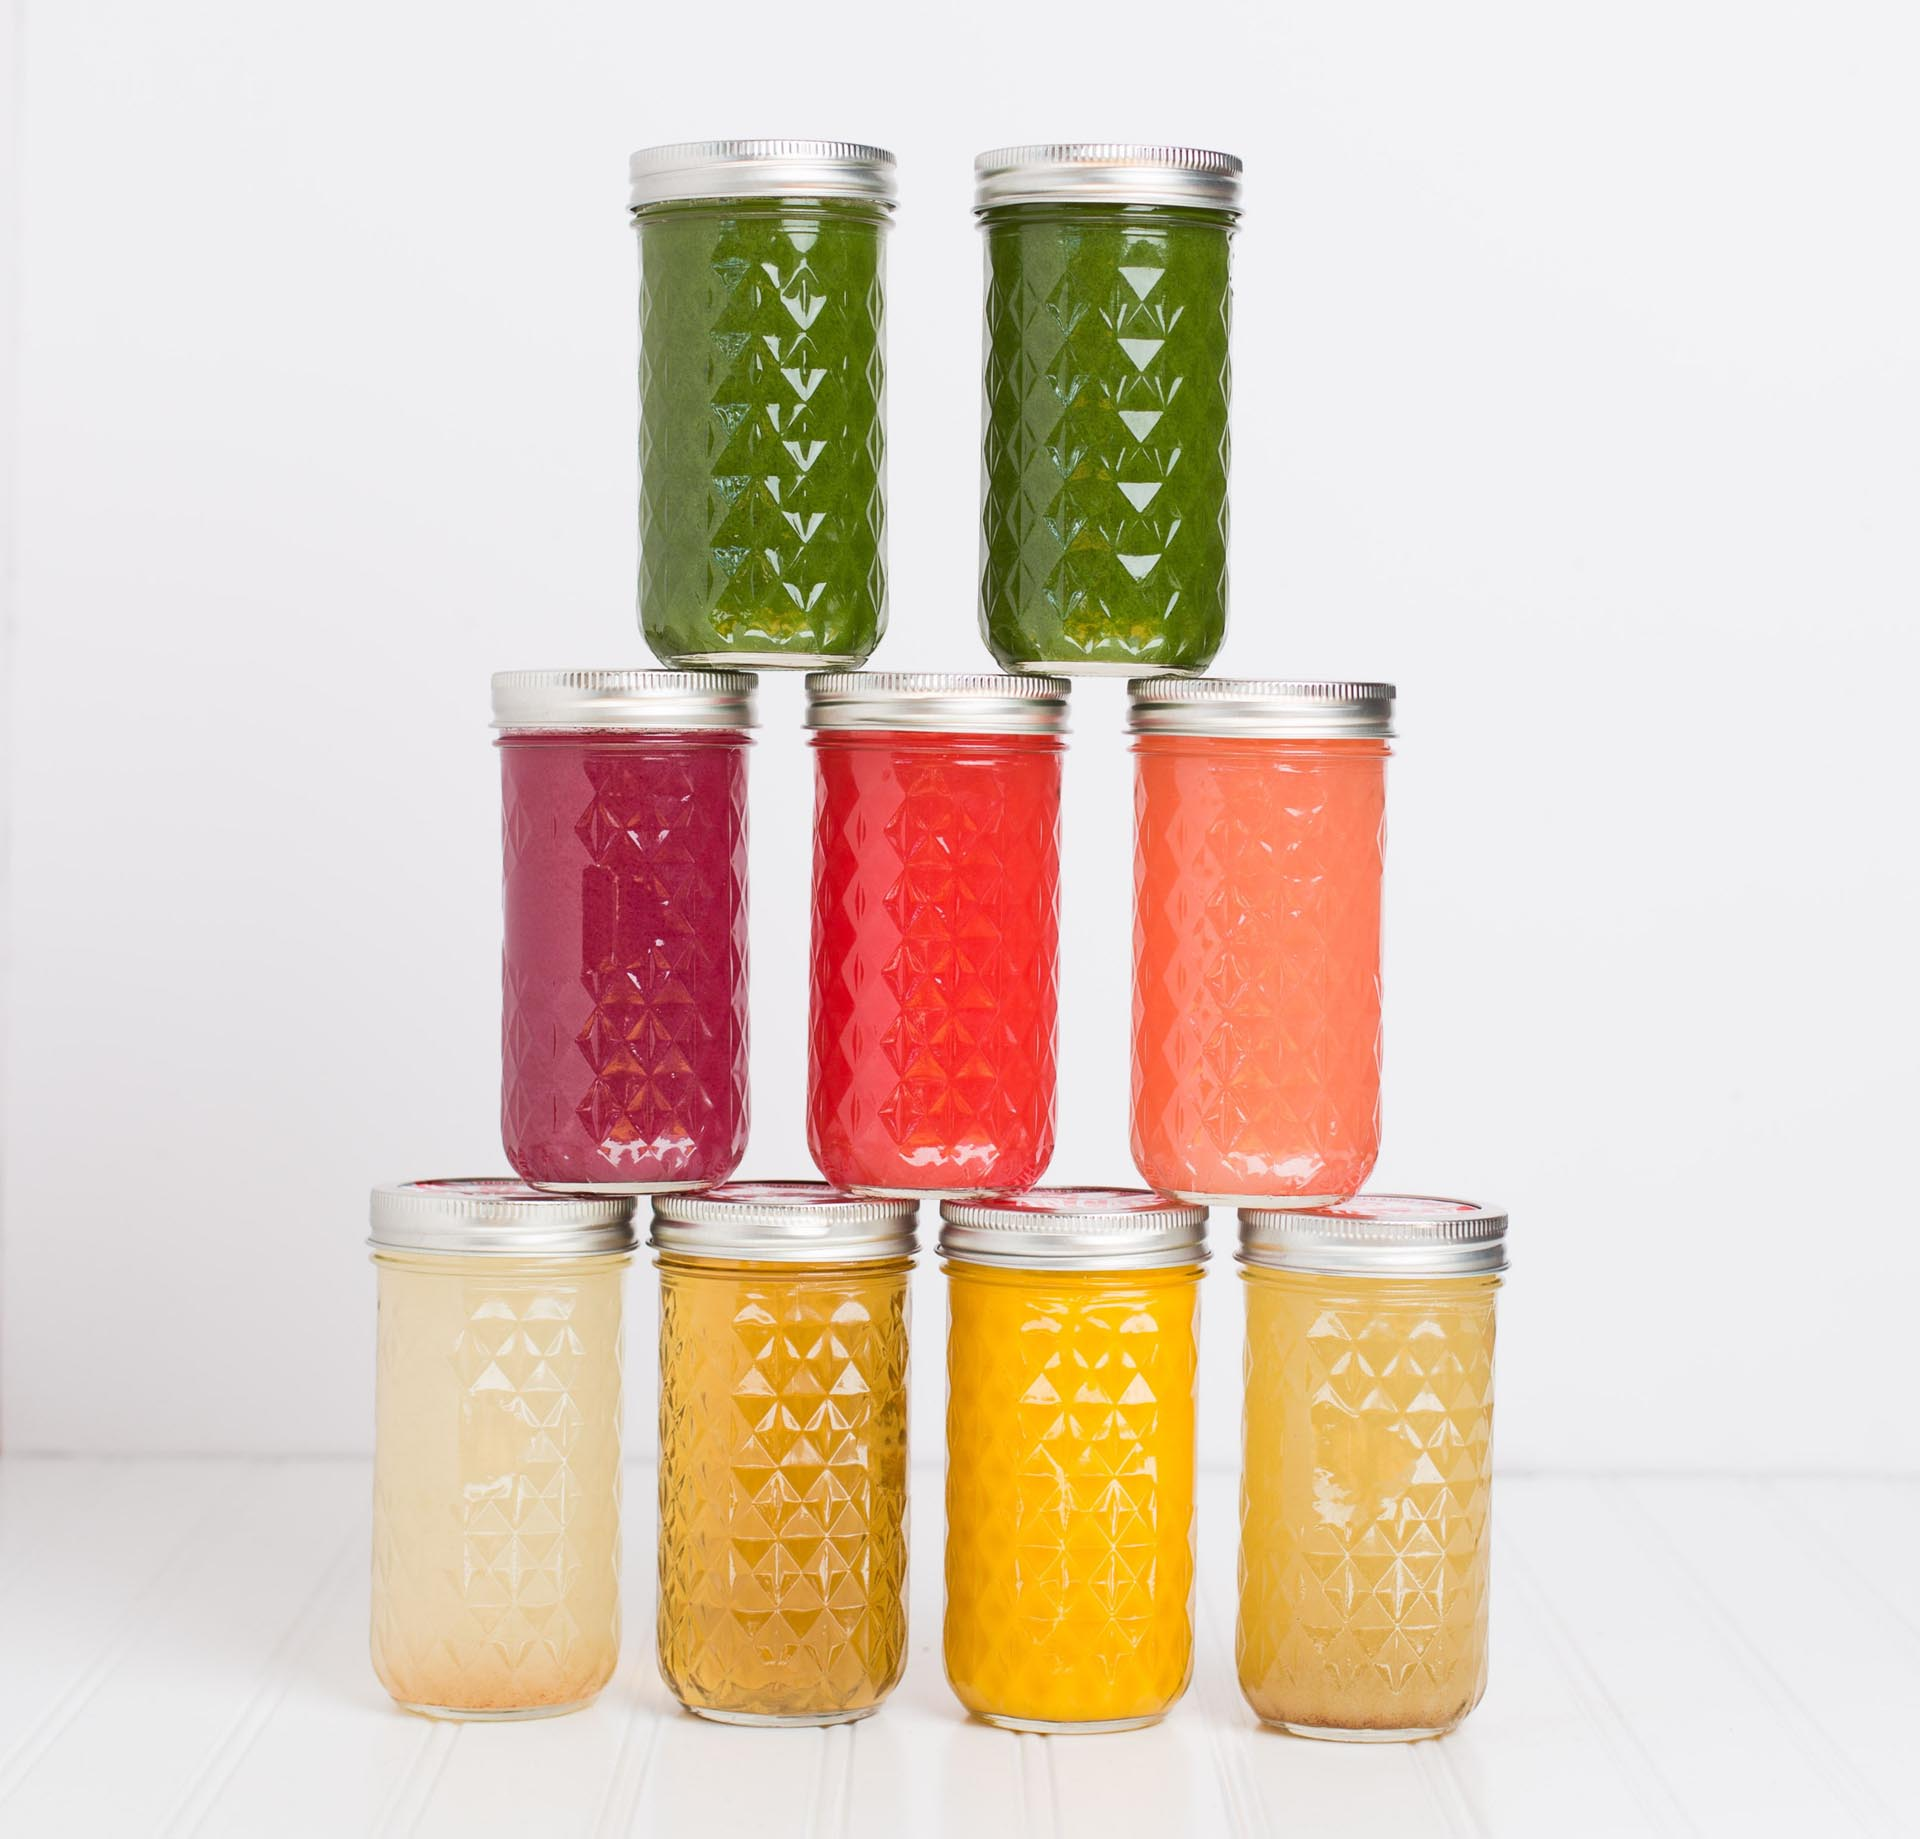 How to lose weight with a juice cleanse